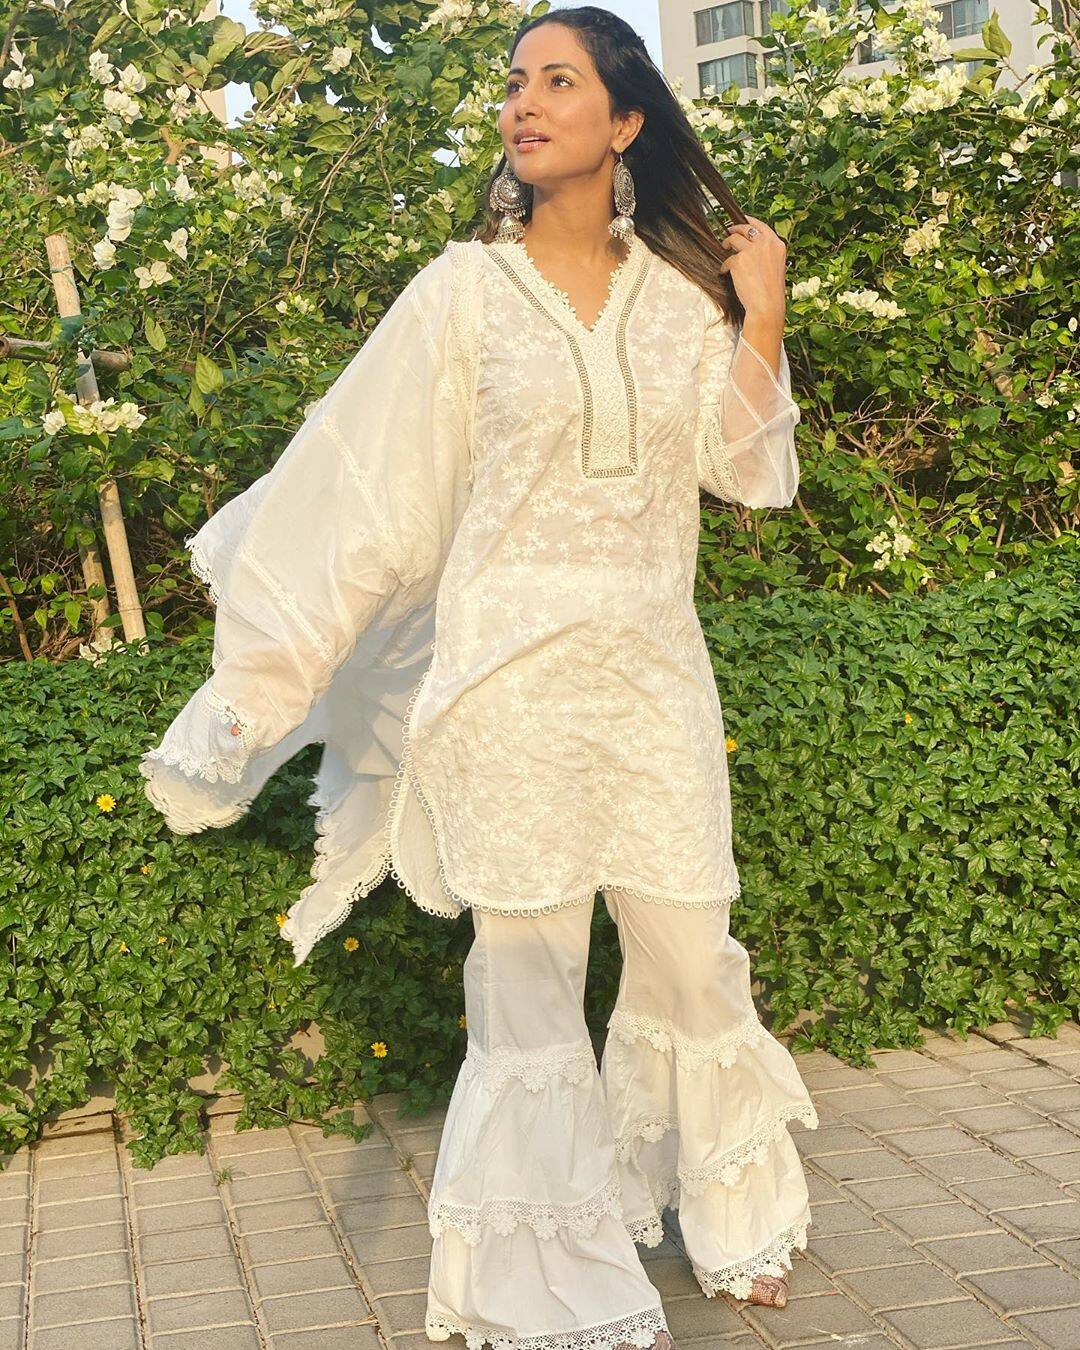 Hina Khan Looks Breezy in White Ethnic Wear